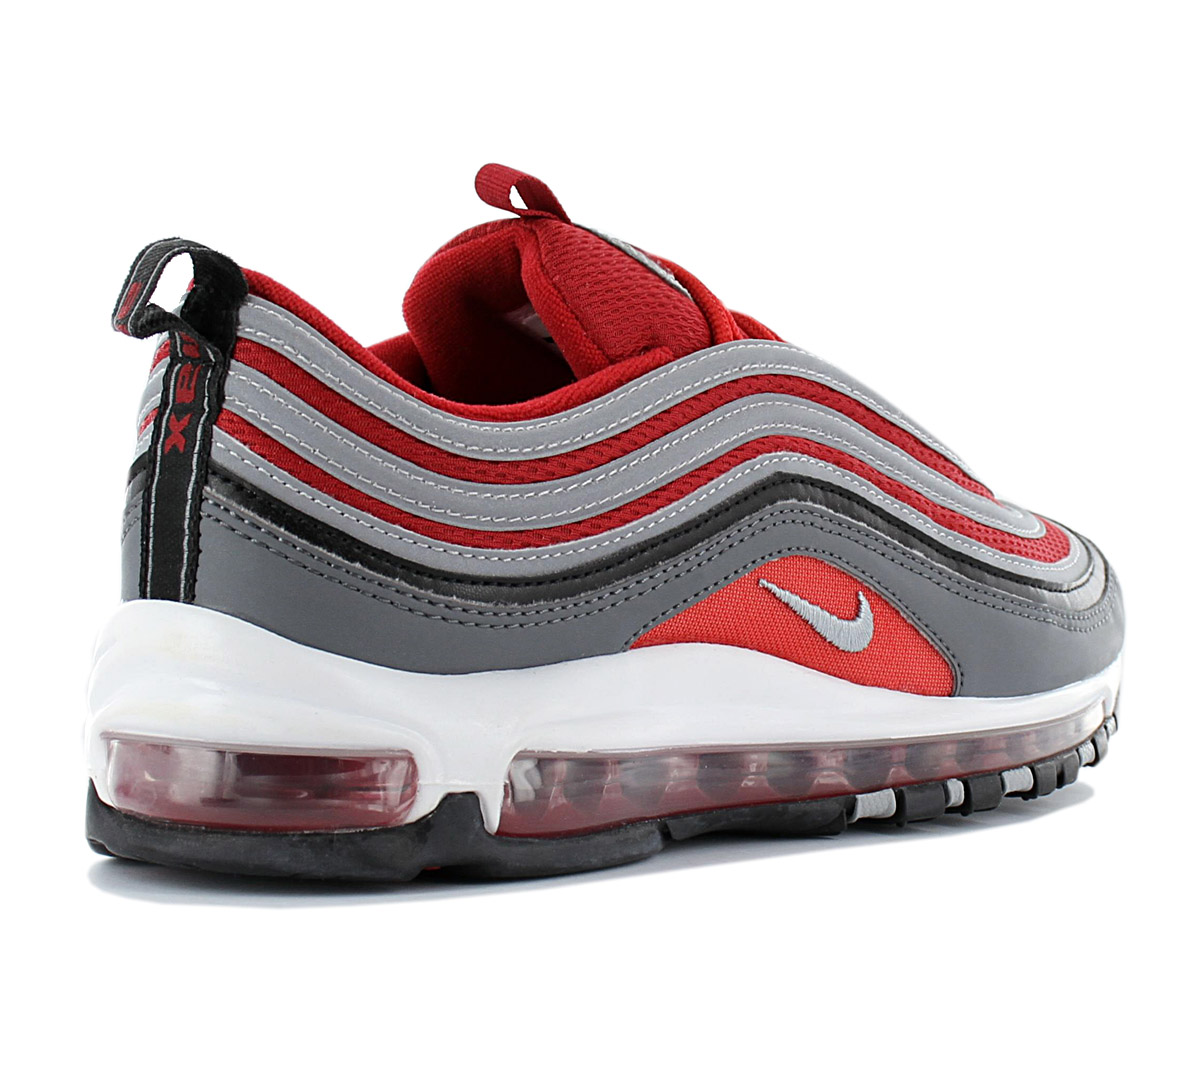 Details about Nike Air Max 97 Men's Premium Sneaker 921826 007 Grey Red Shoes New